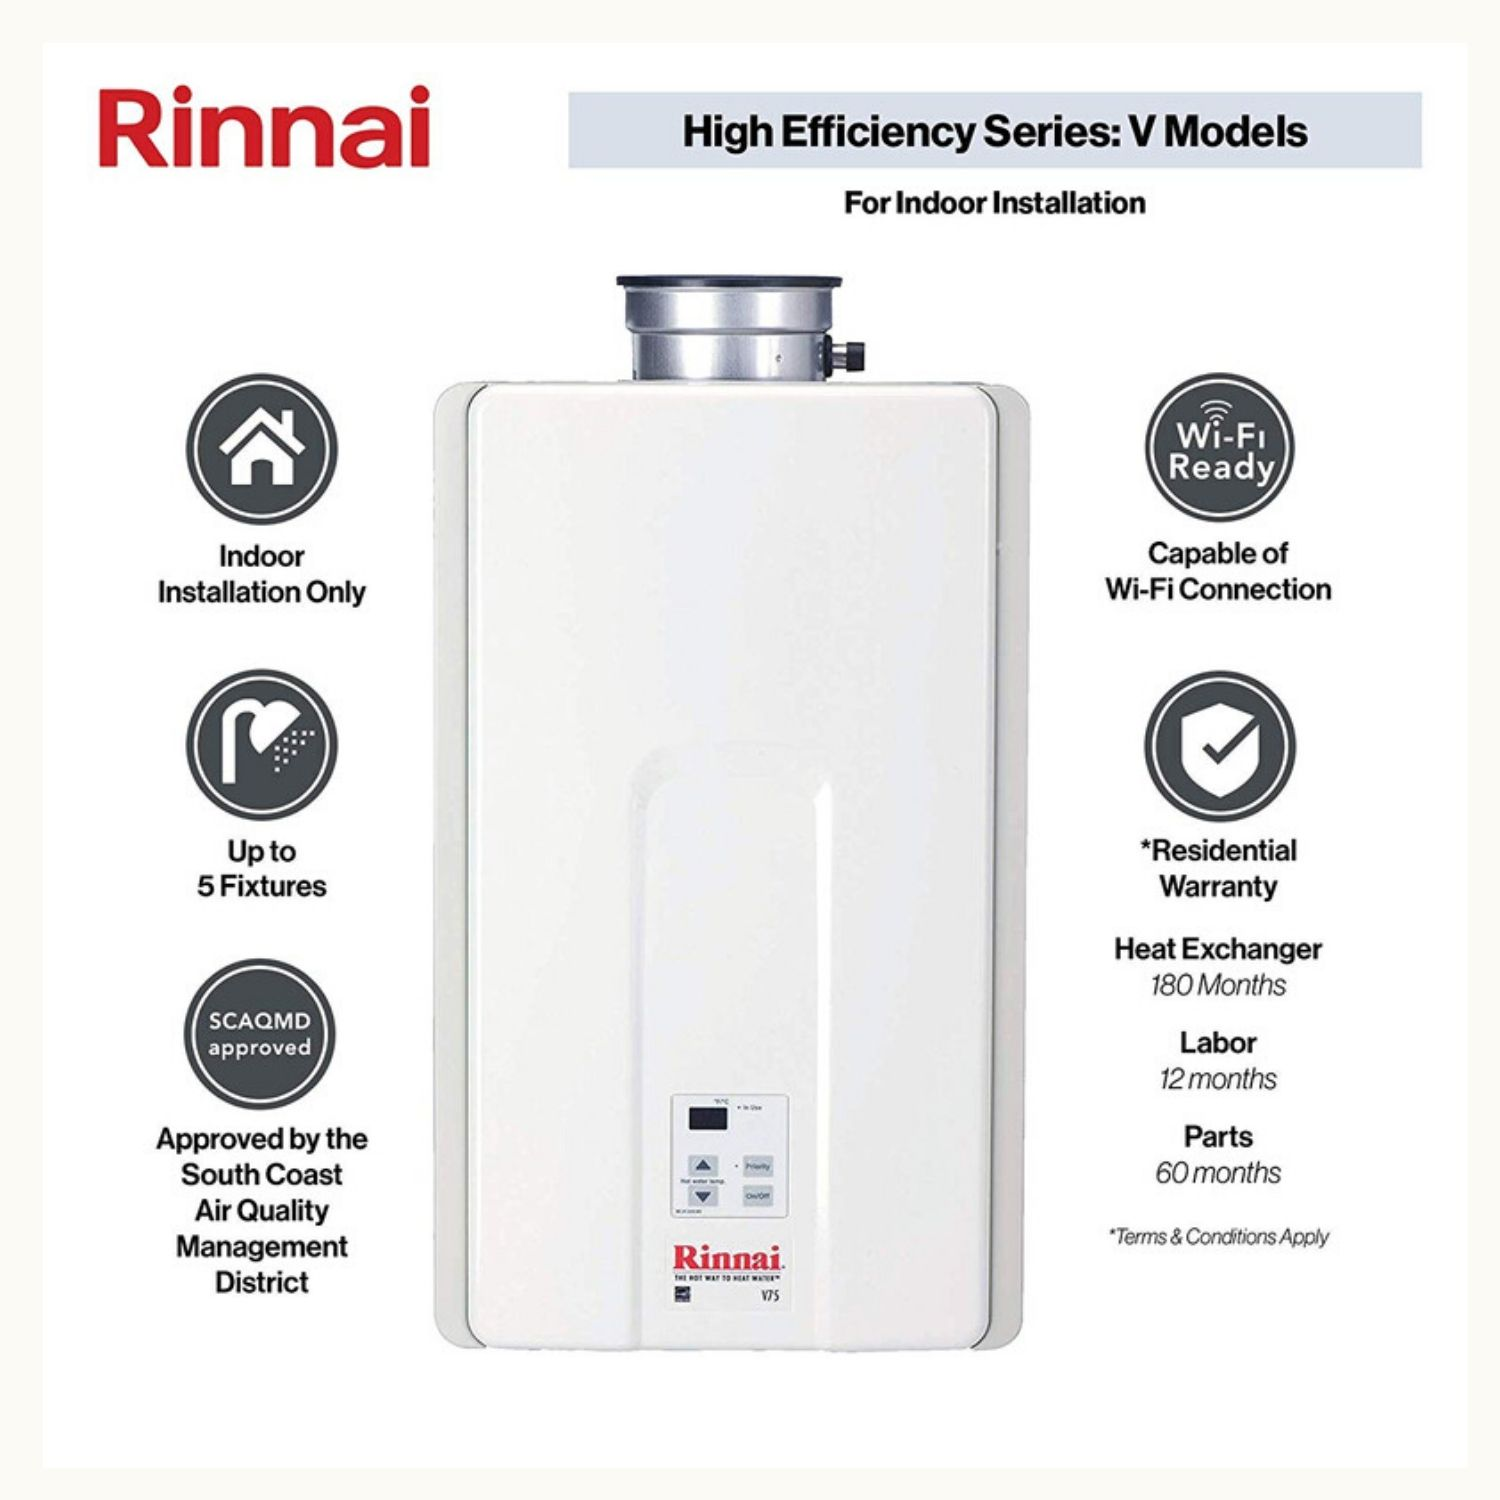 Rinnai V Series HE Tankless Indoor Water Heater